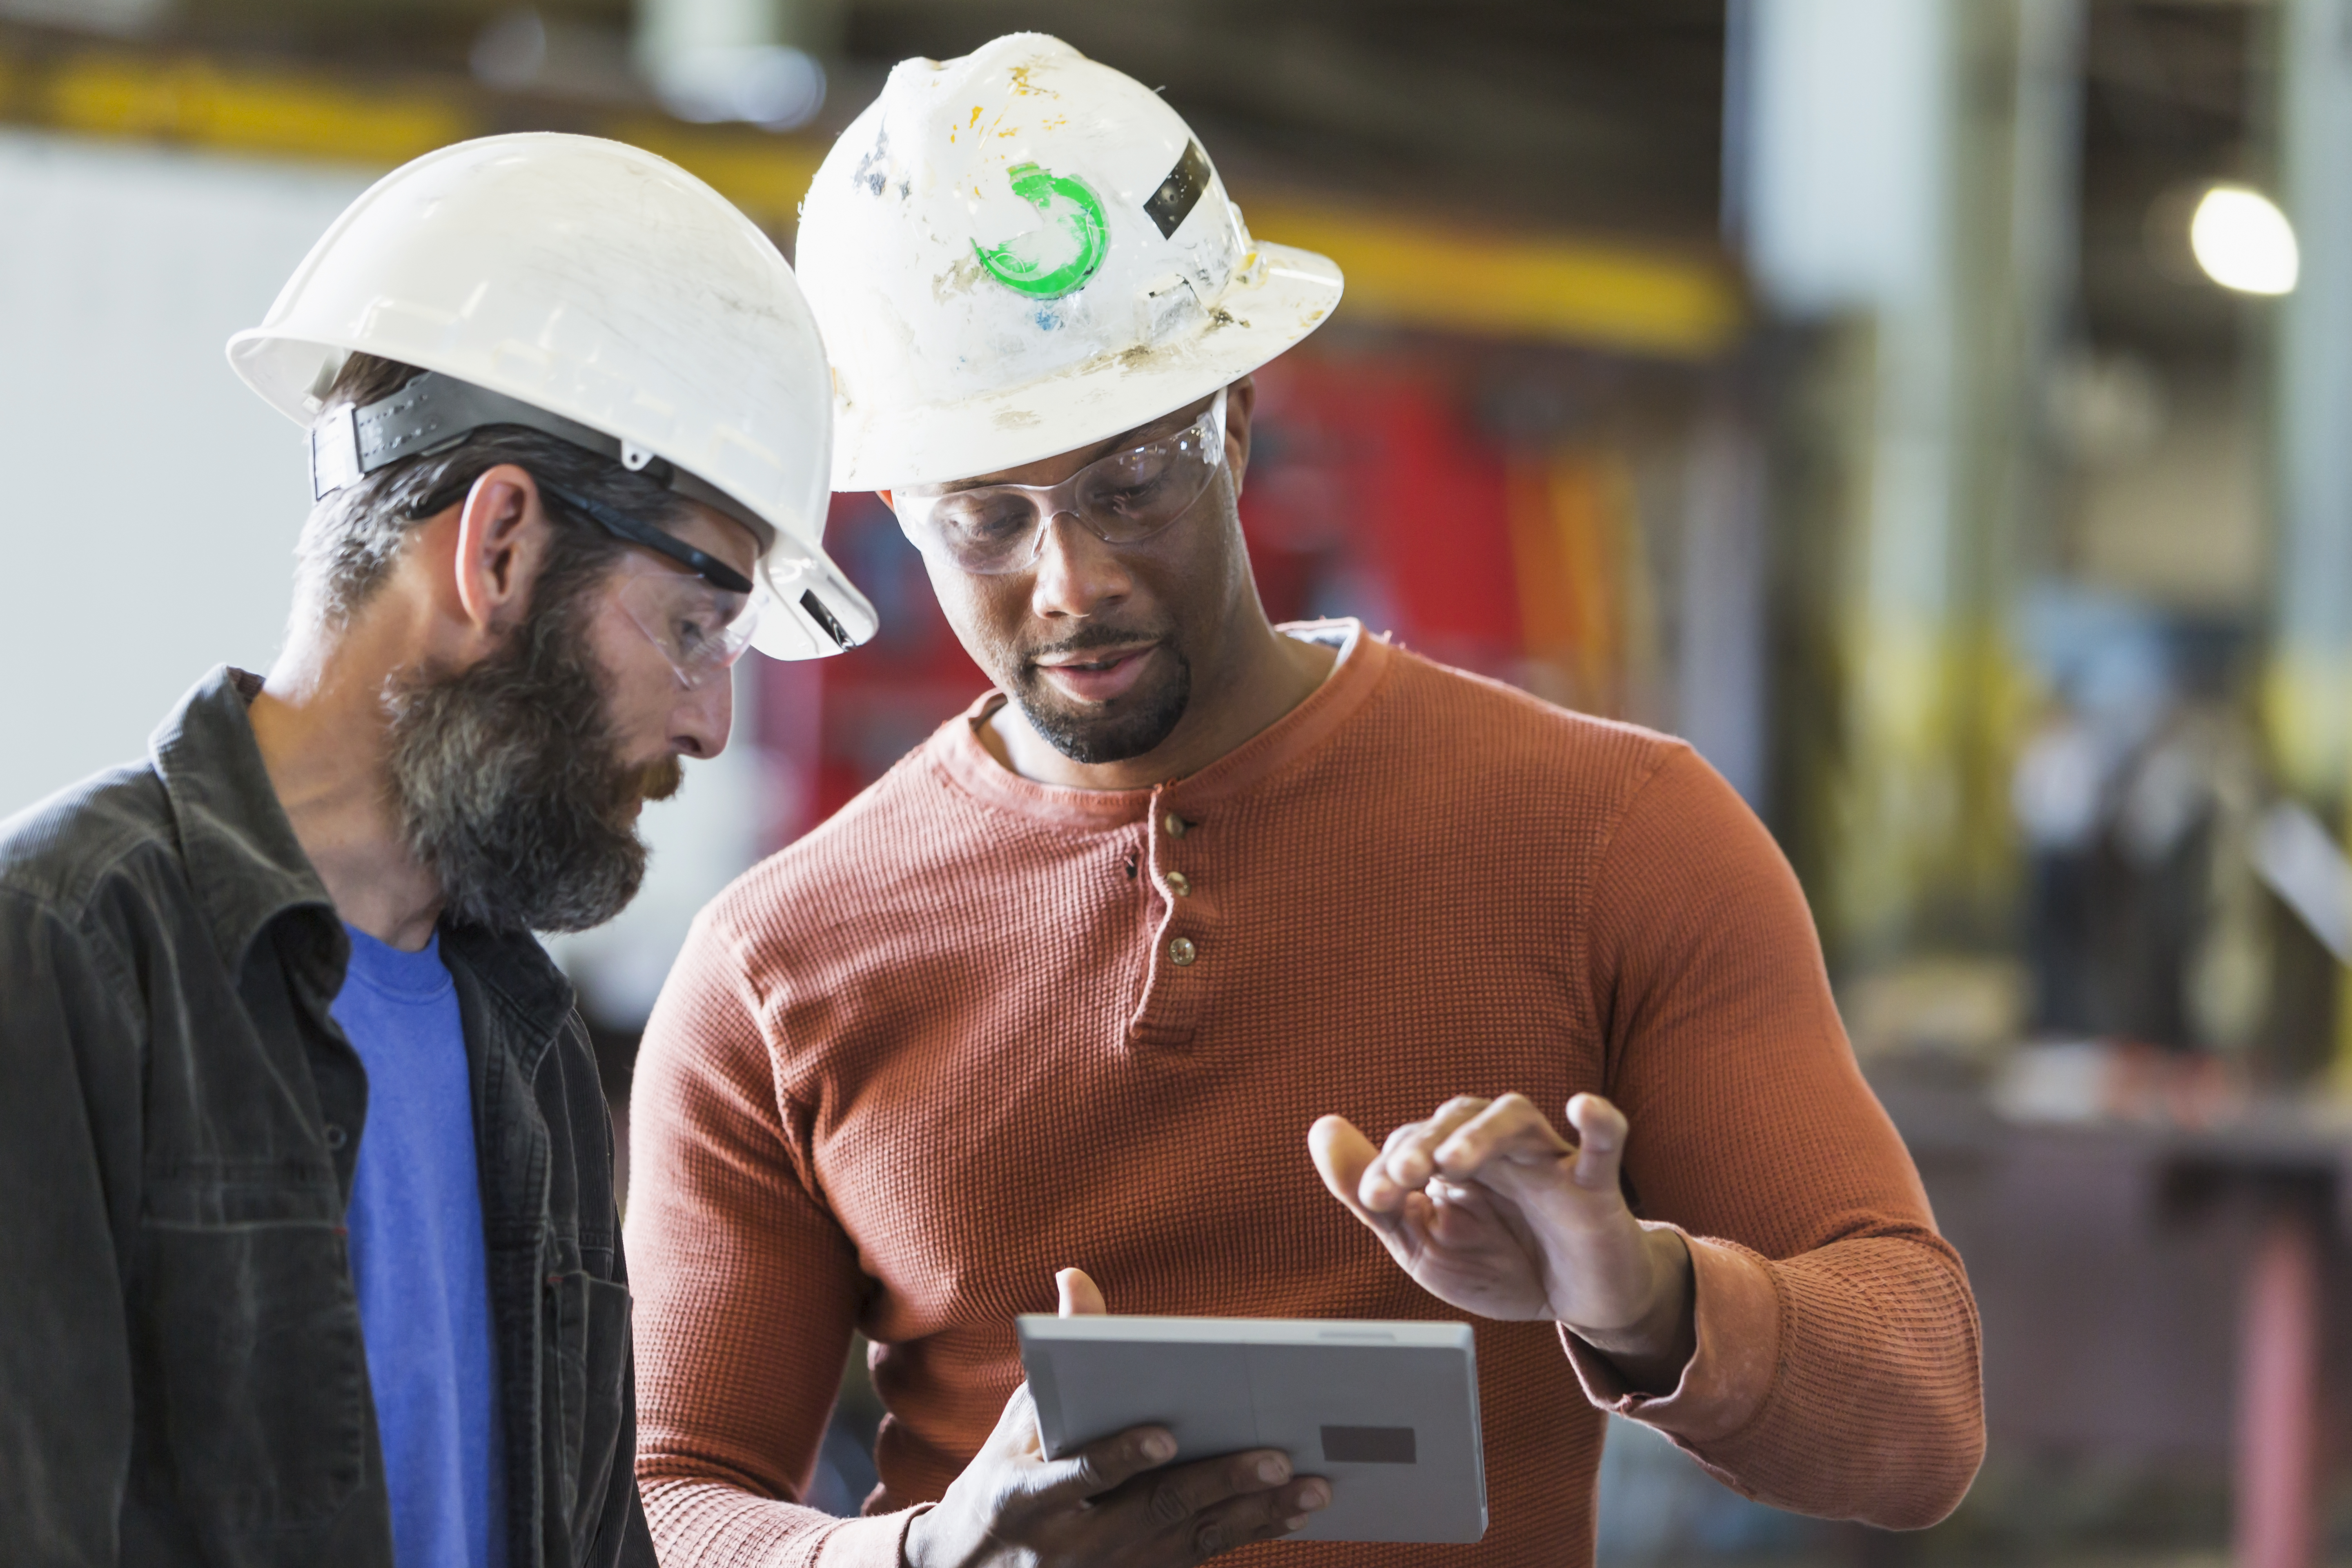 What Is a Blue-Collar Worker and a White-Collar Worker